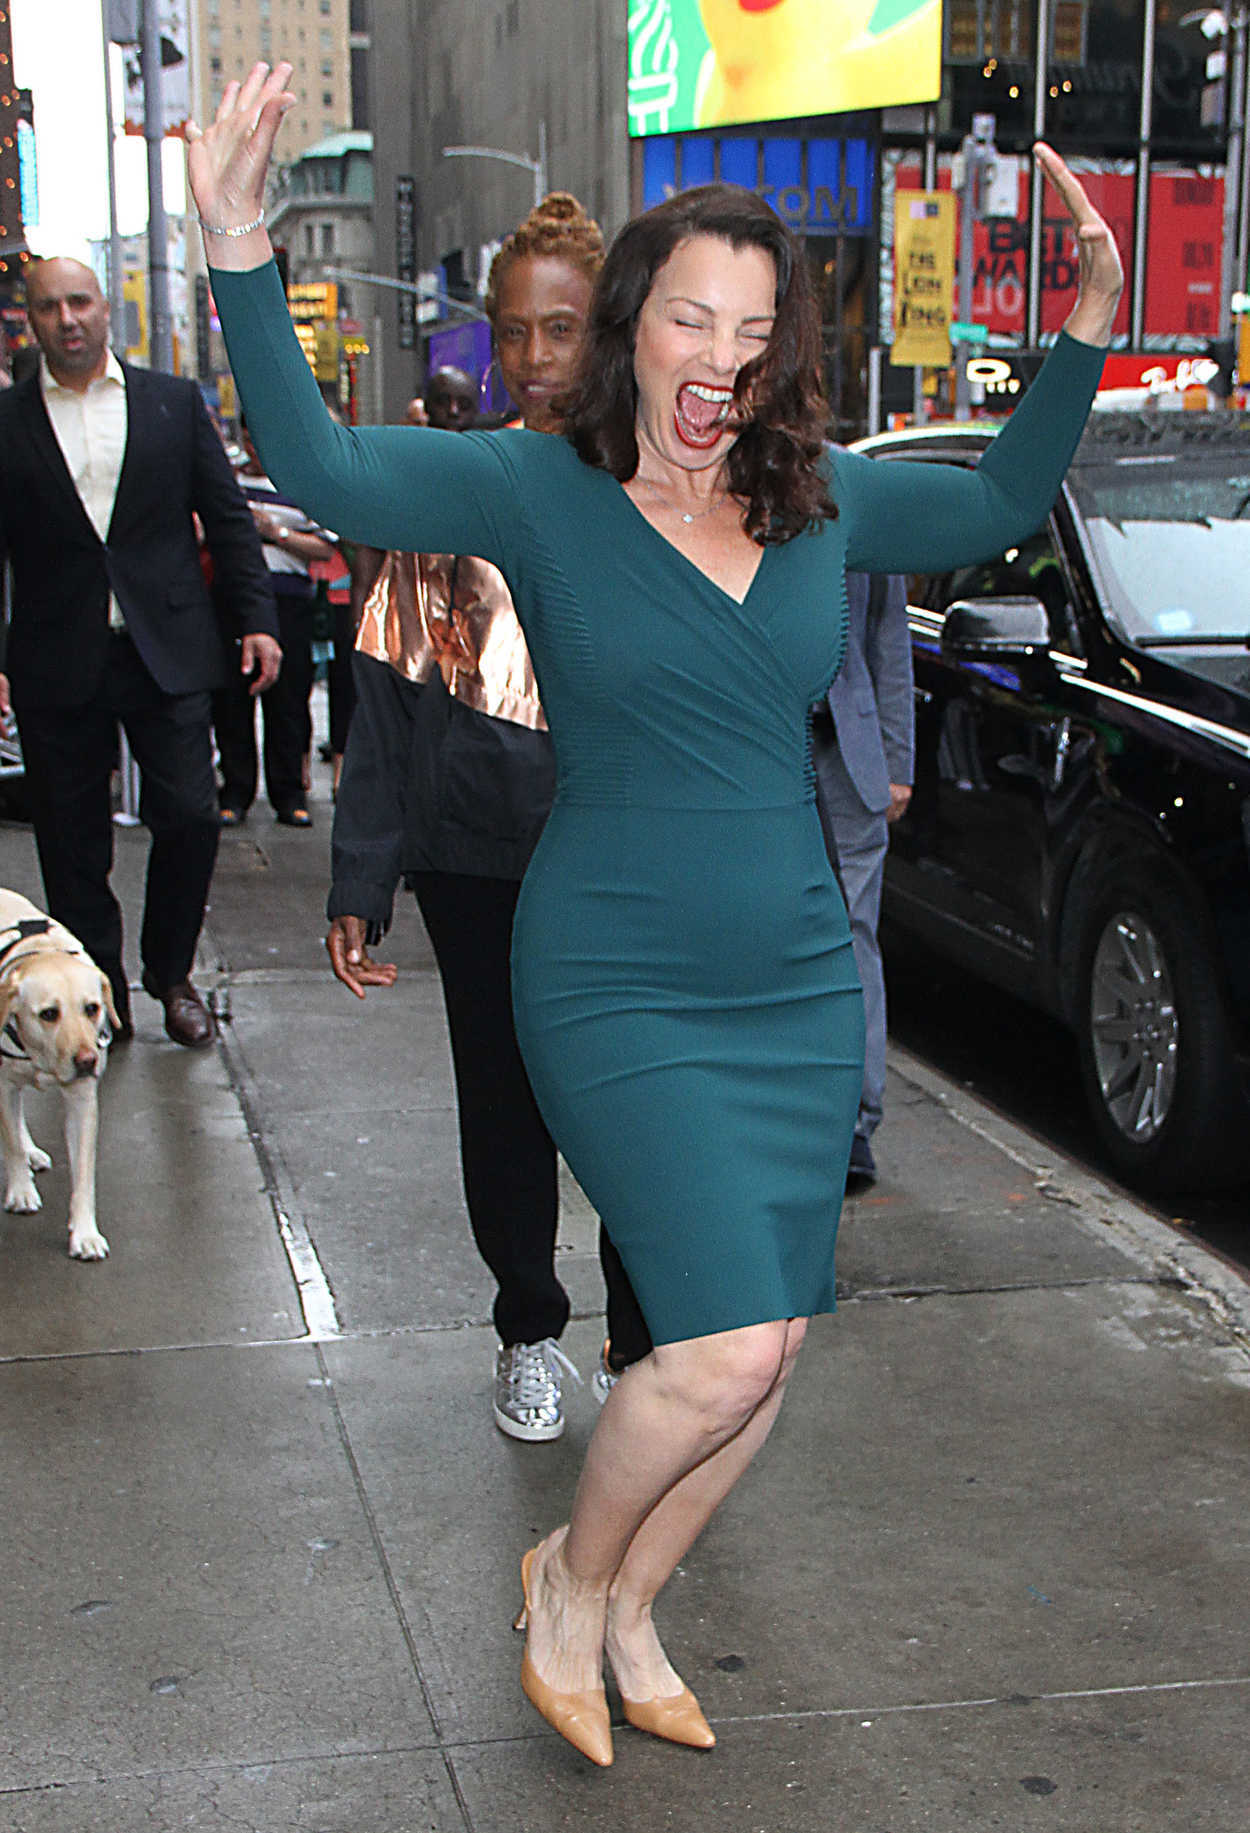 New York Fashion Show >> Fran Drescher Leaves Good Morning America Show in New York – Celeb Donut